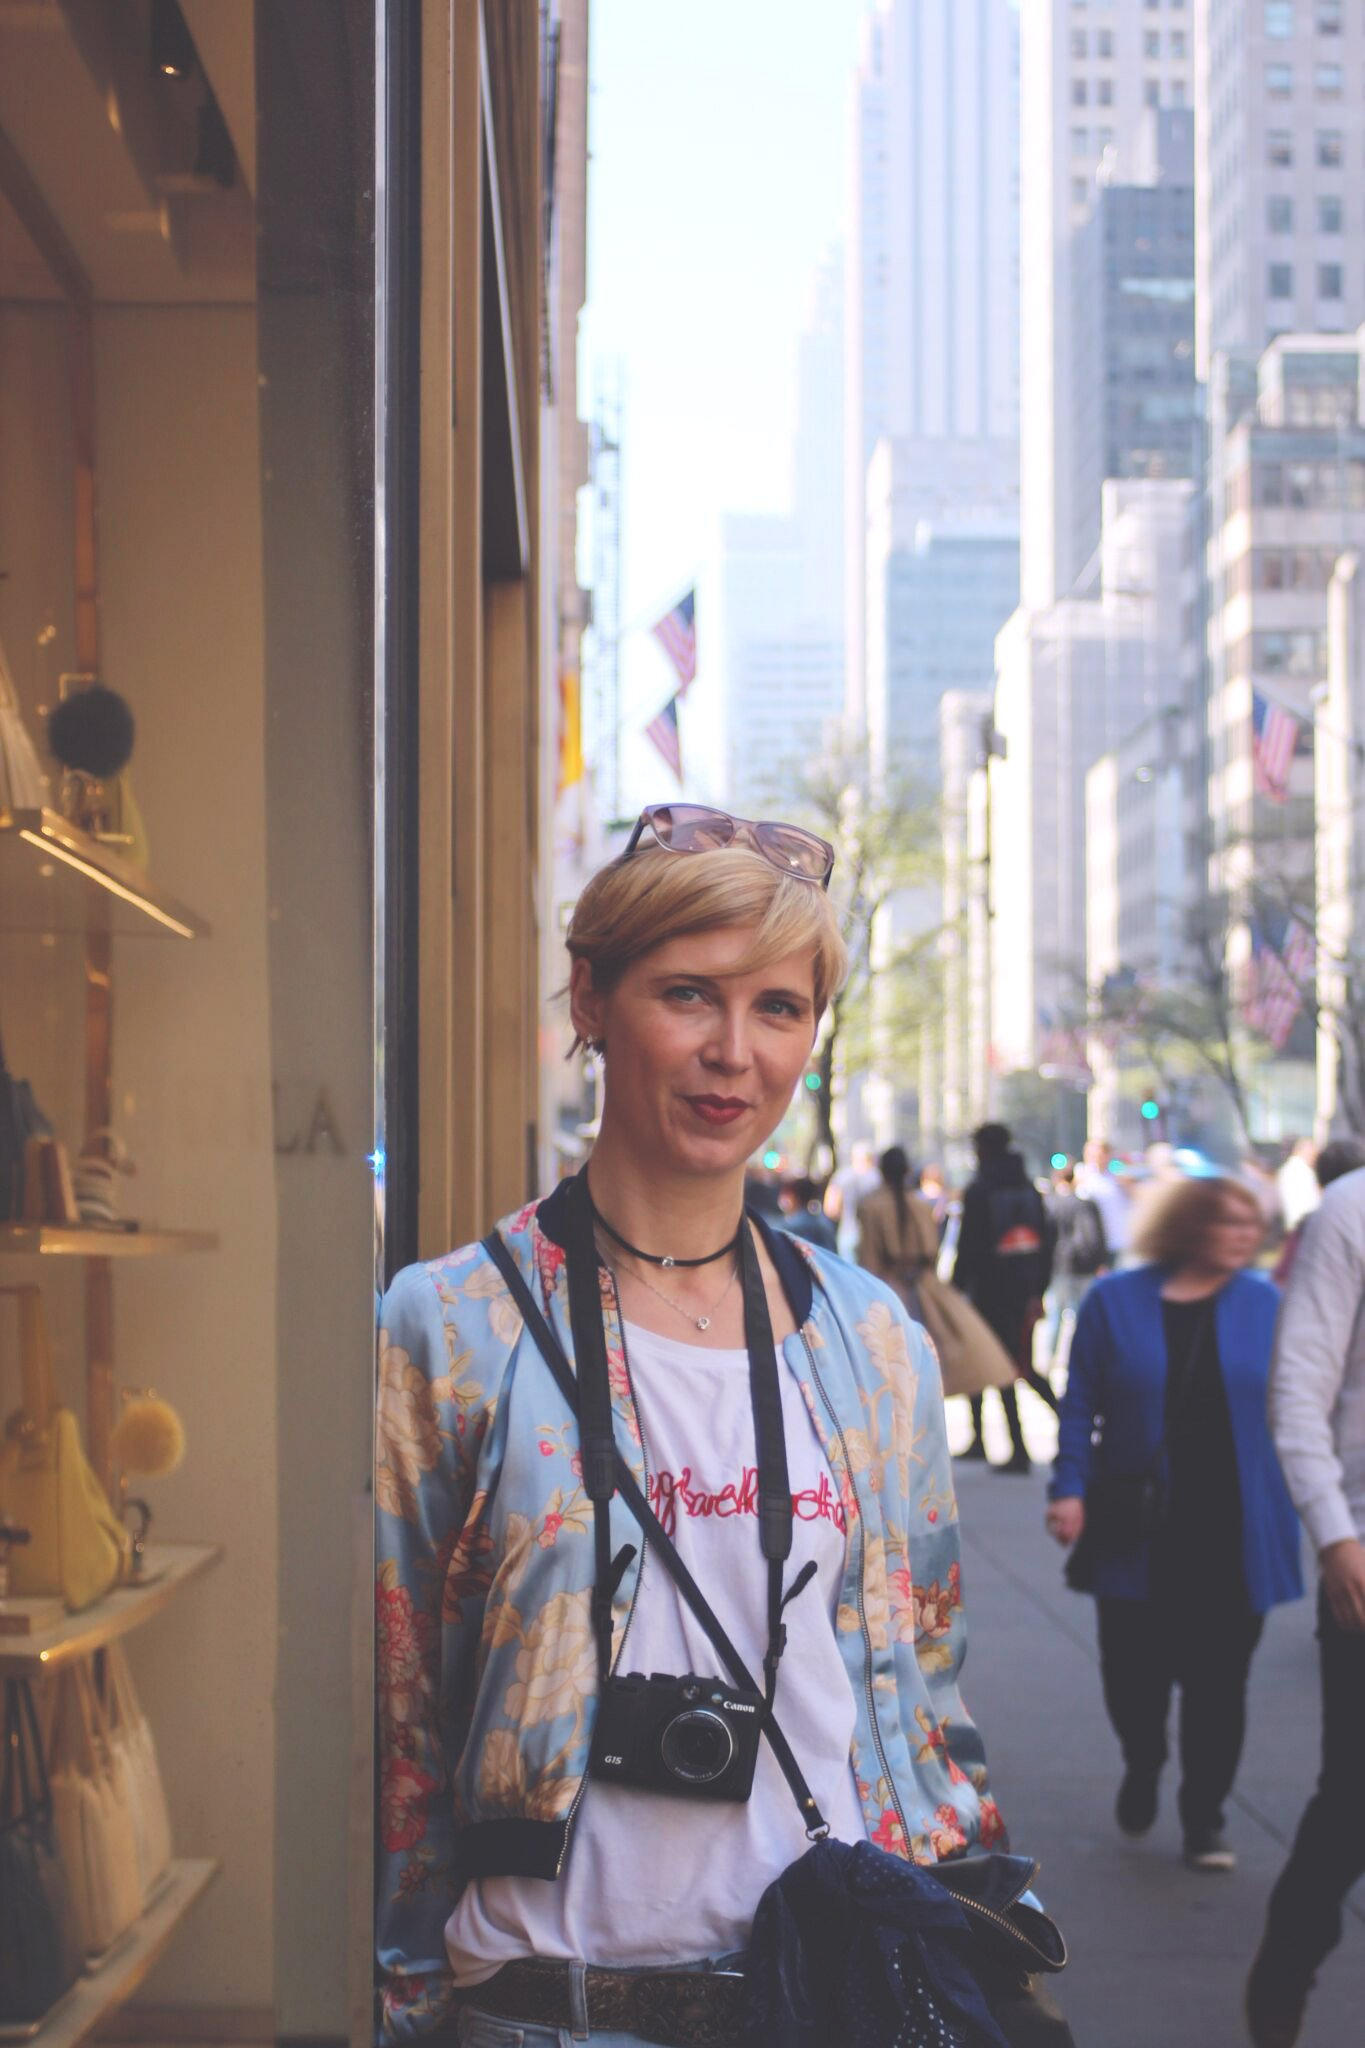 Power-Sightseeing, New York City, Conny Doll, Fashionblog, Conny allein in New York - okay zu dritt